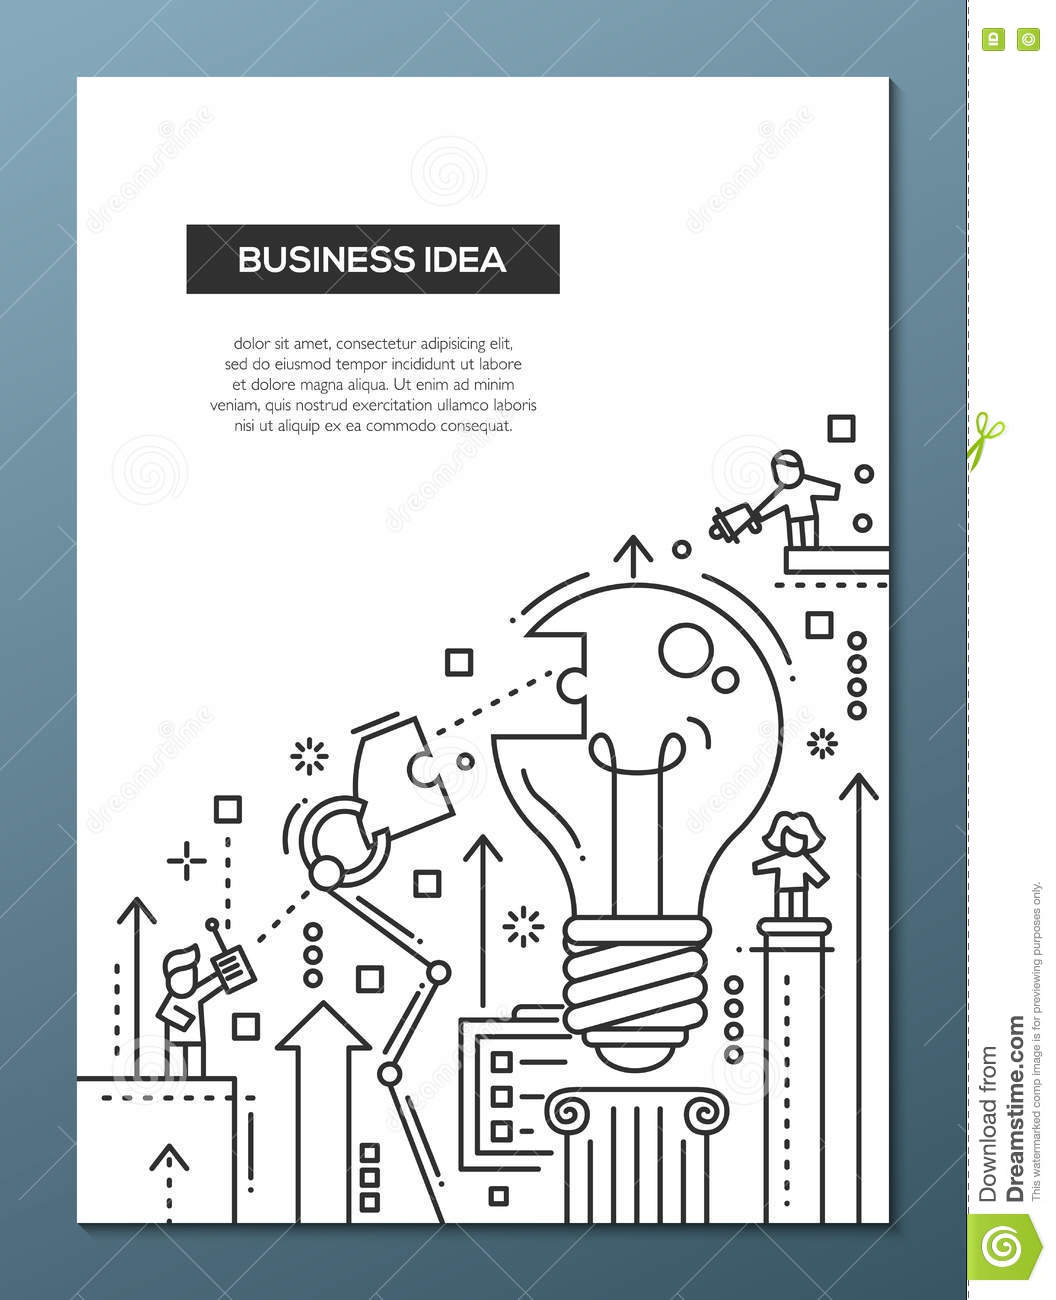 Business idea line design brochure poster template a4 stock vector download business idea line design brochure poster template a4 stock vector illustration of improvement wajeb Image collections